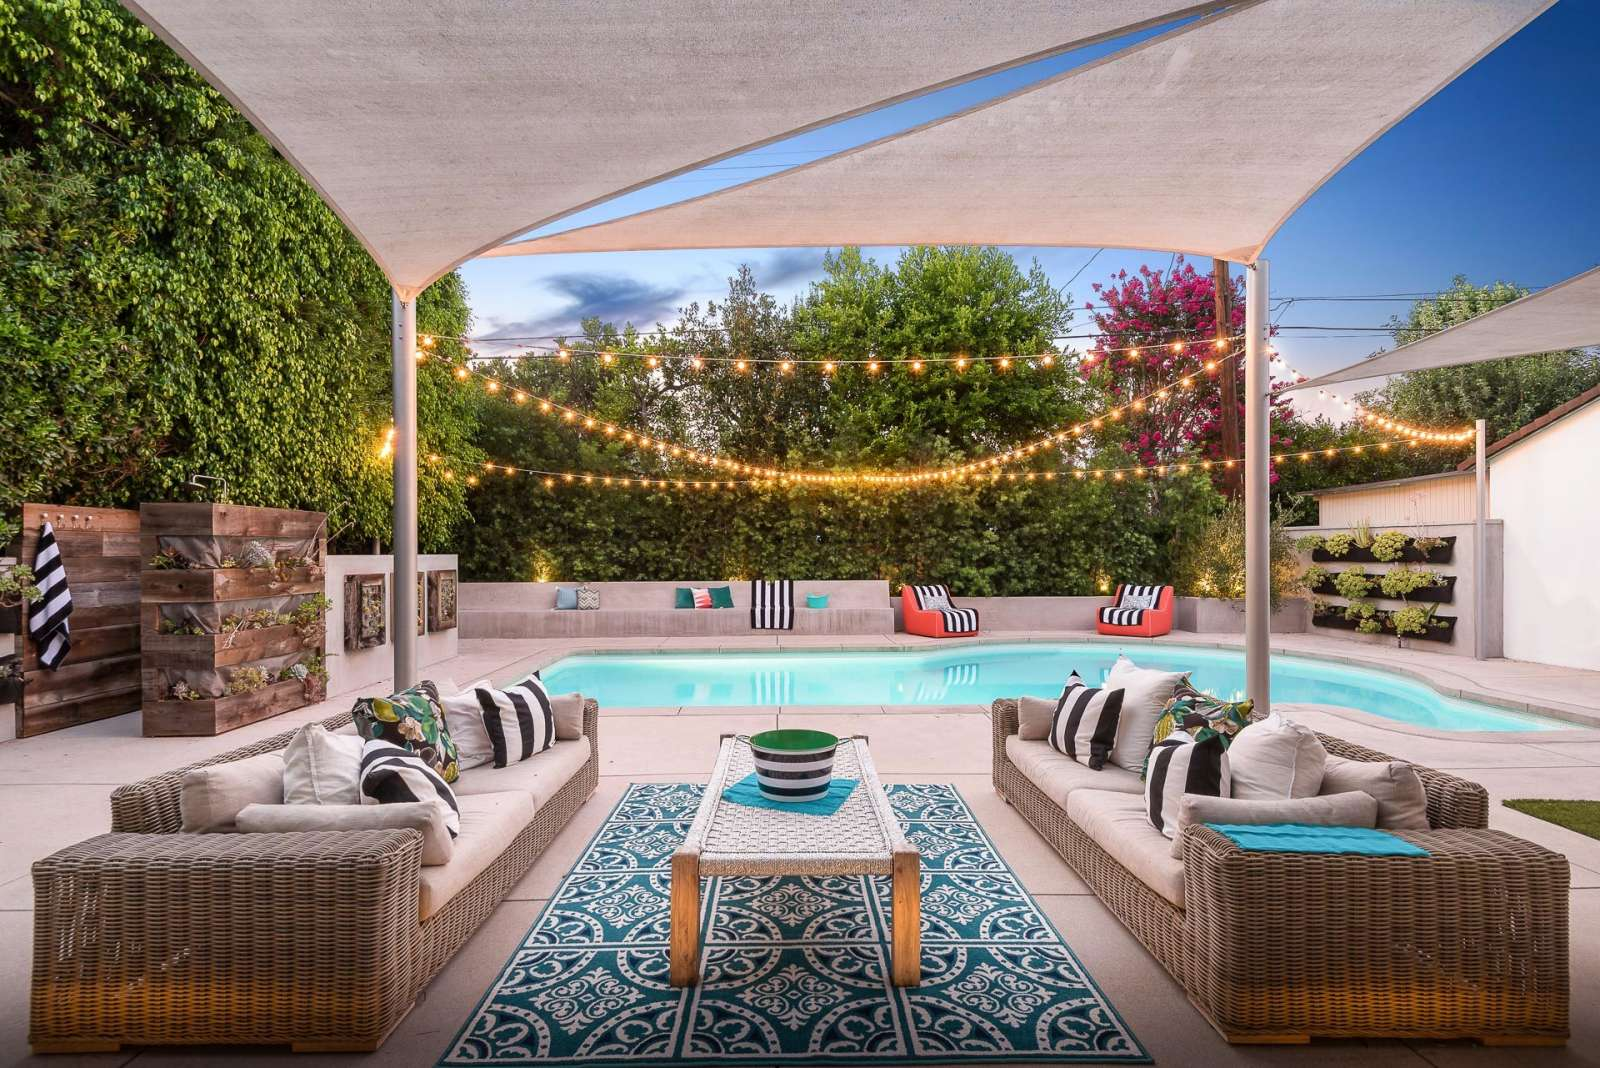 Lena Headey's LA home - backyard pool